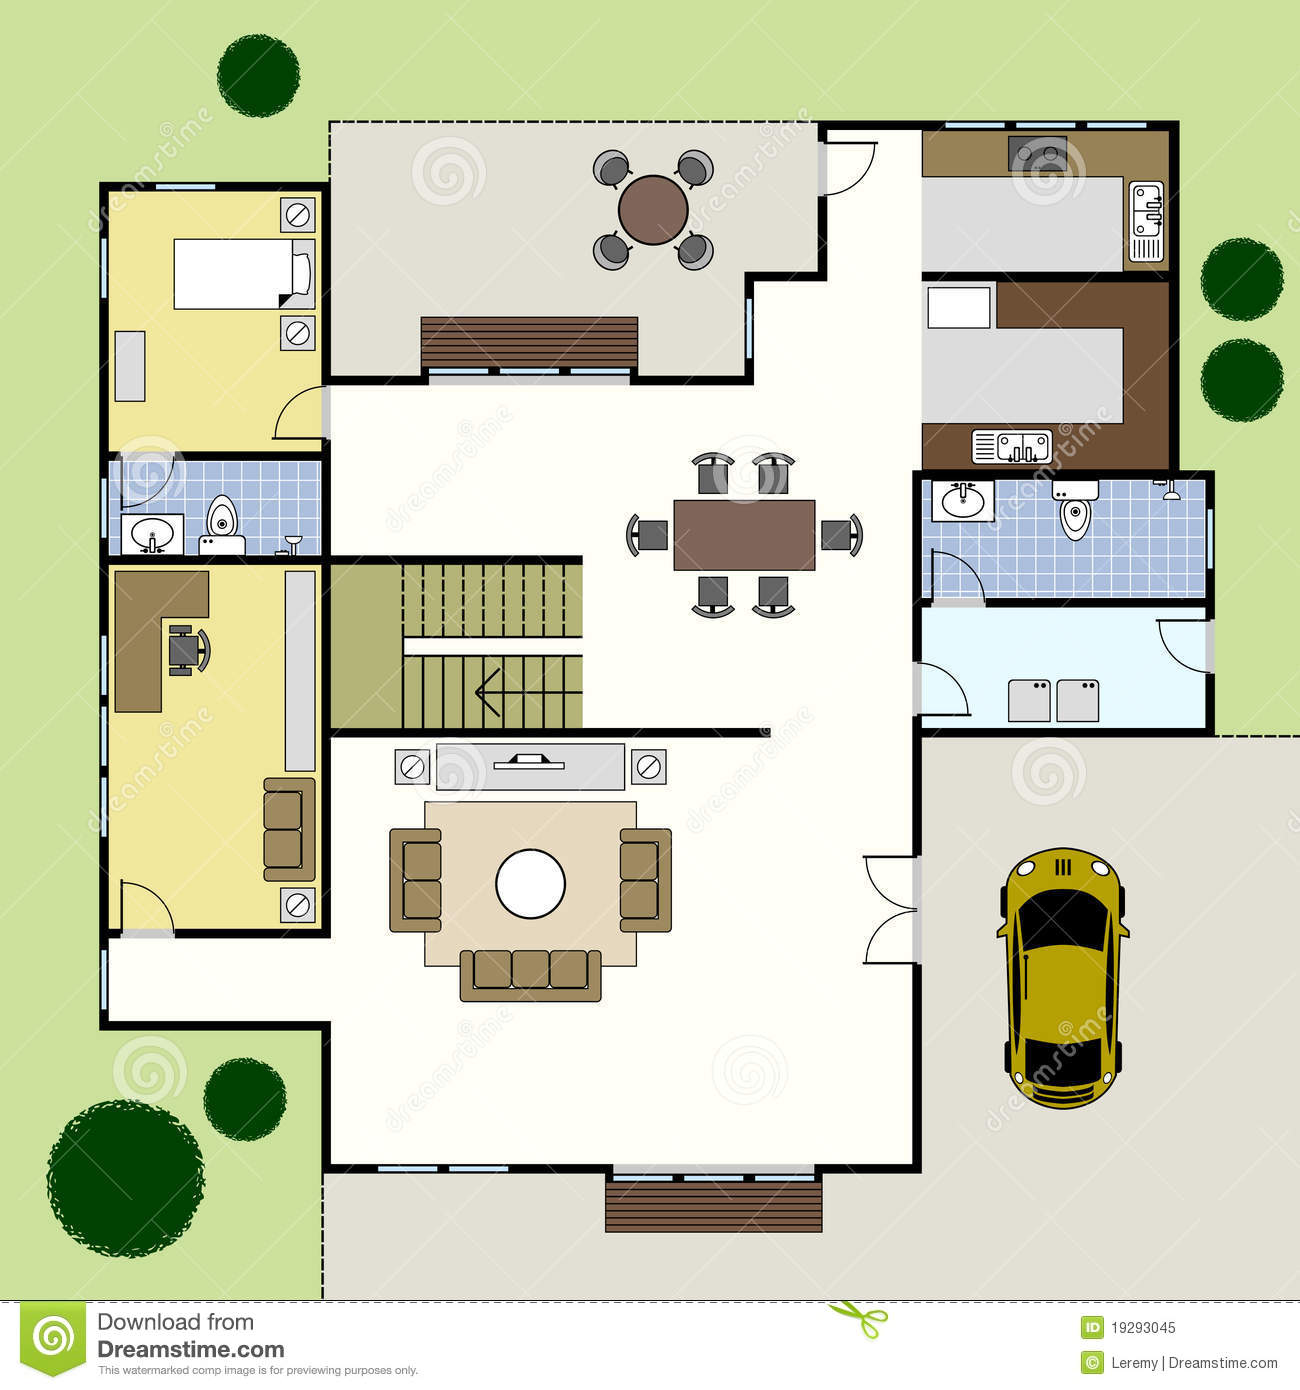 Chambre de plan d 39 architecture de floorplan illustration for Plan d architecture